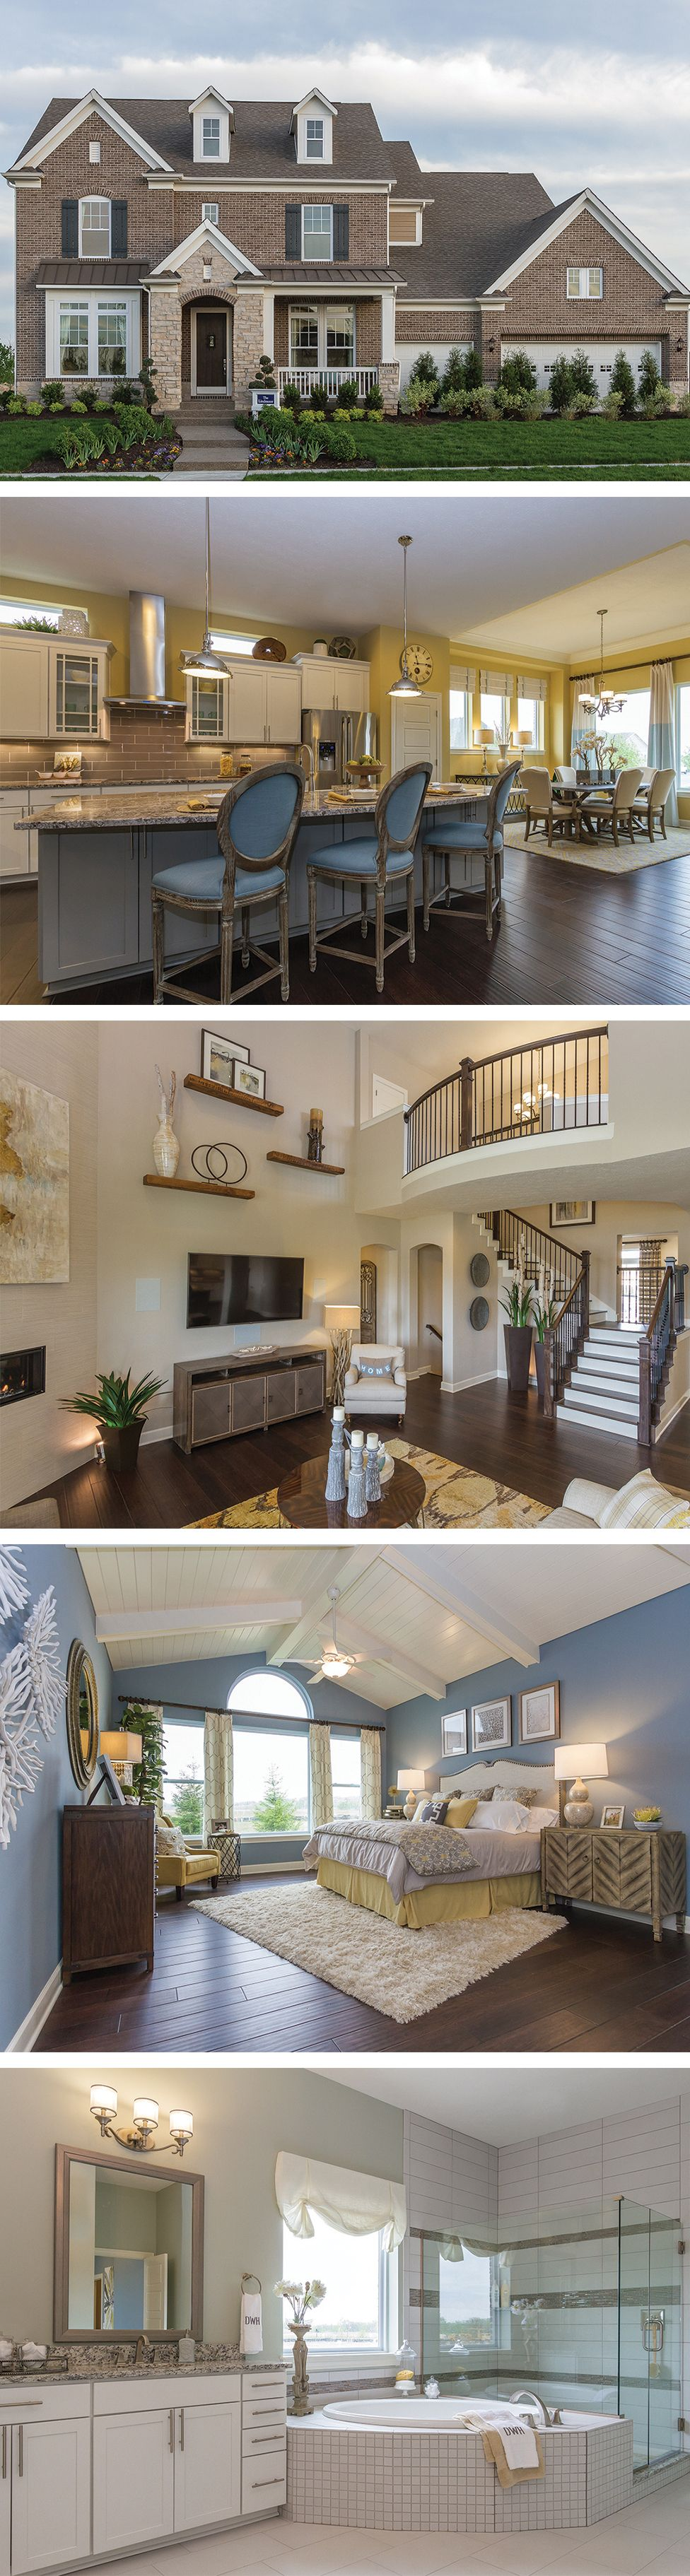 new homes in westfield in the lindmoor is our model home in the